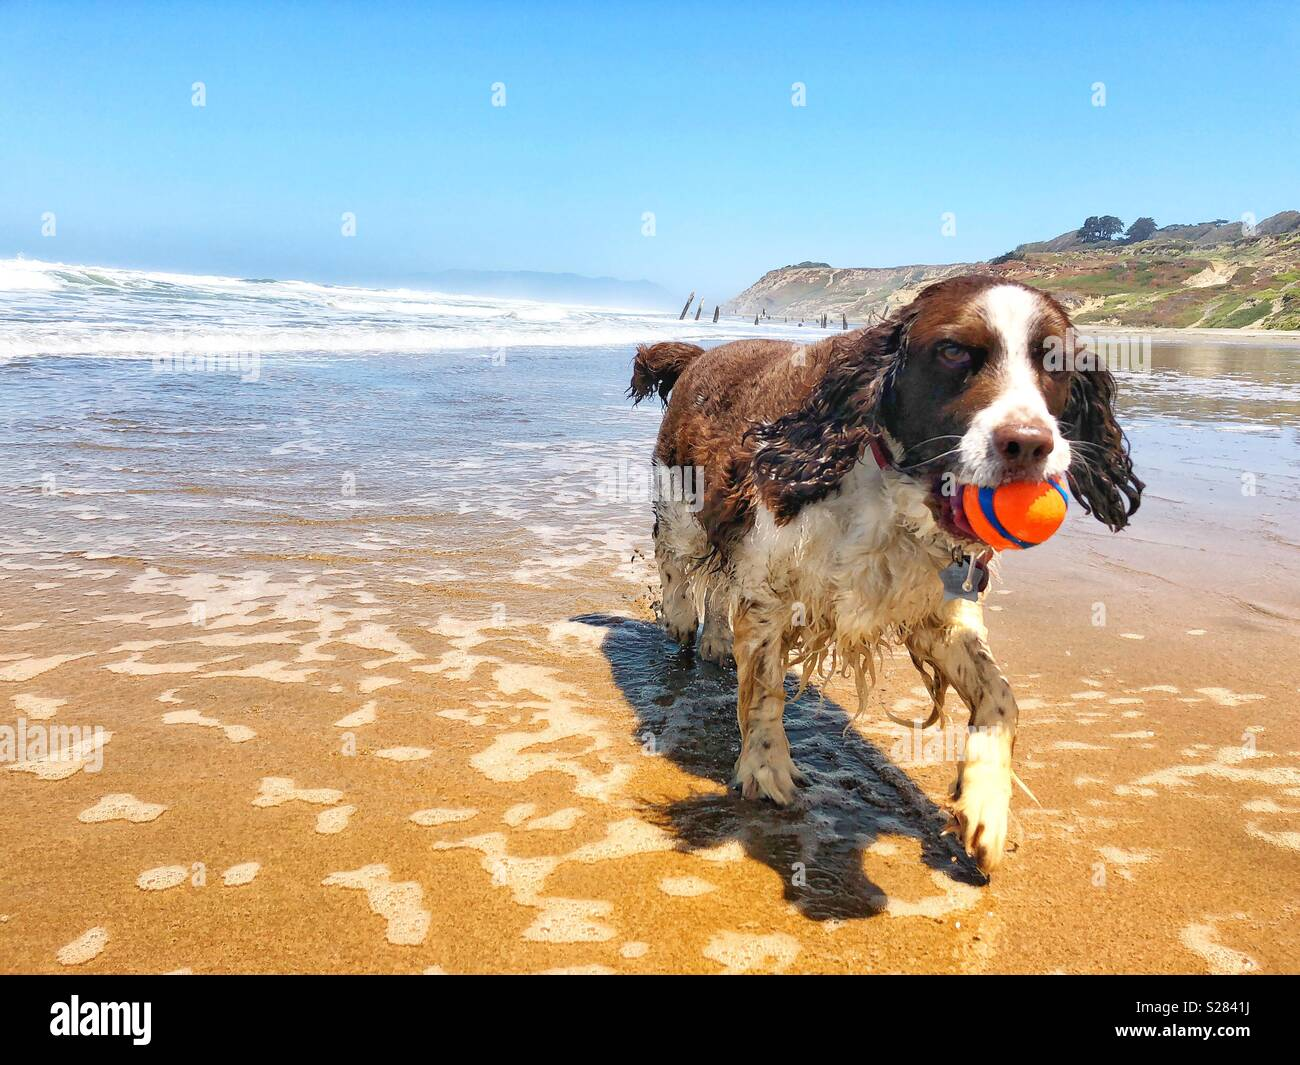 Happy English Springer Spaniel puppy dog girl delighted to retrieve orange ball as she trots merrily through the Summer shore break at Fort Funston beach in California - Stock Image